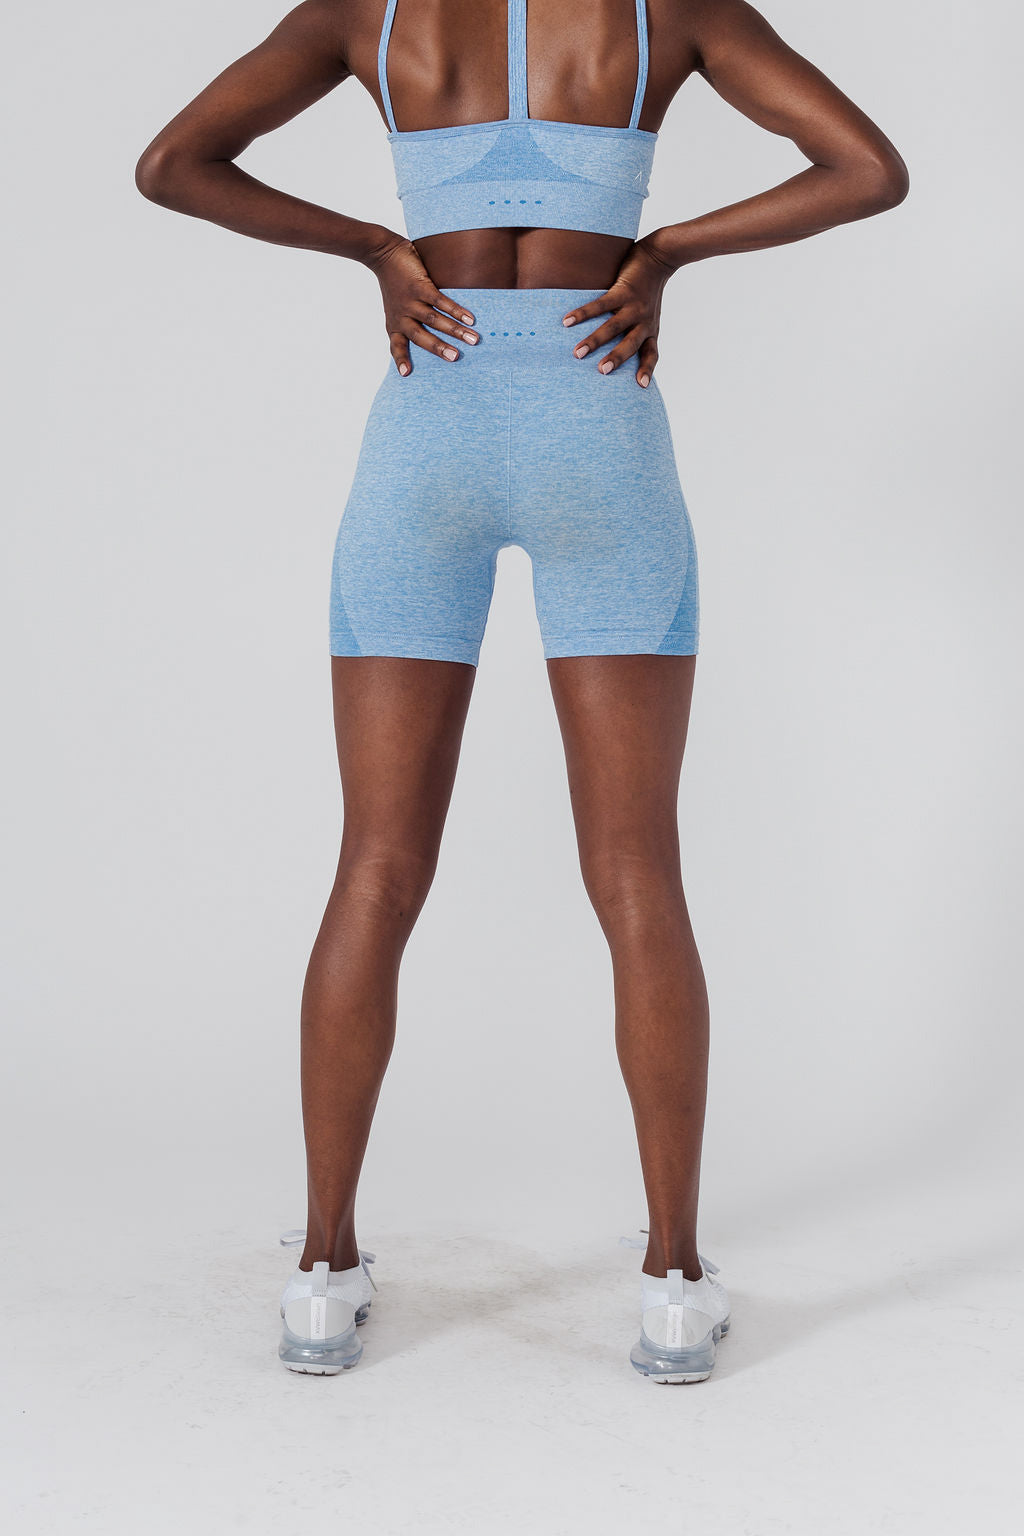 "ACTA™ Seamless Pro Shorts 6"" - Chambray"